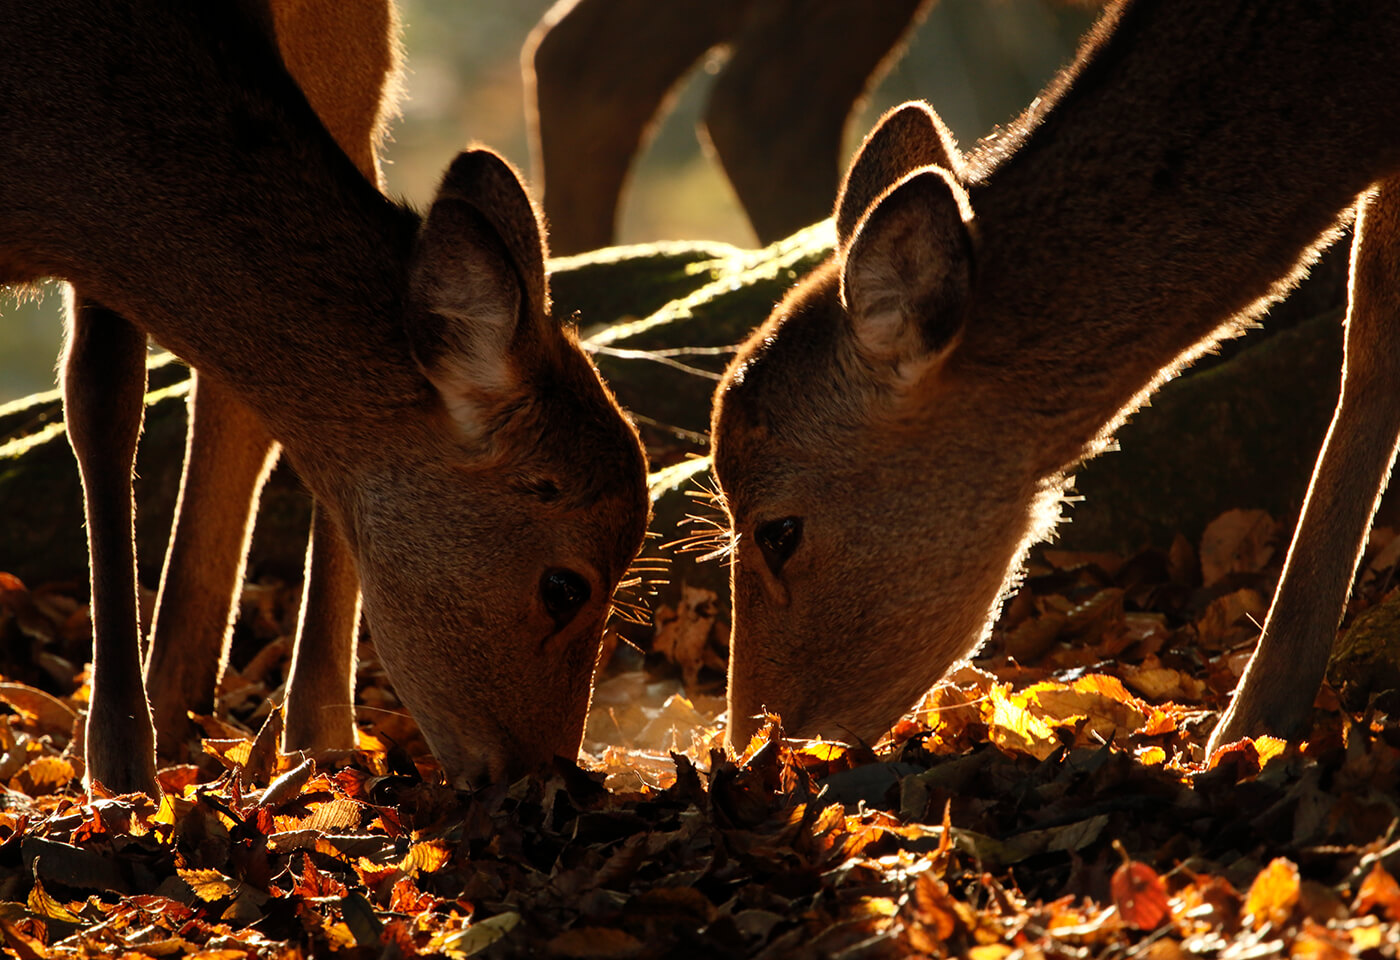 Image of deers eating